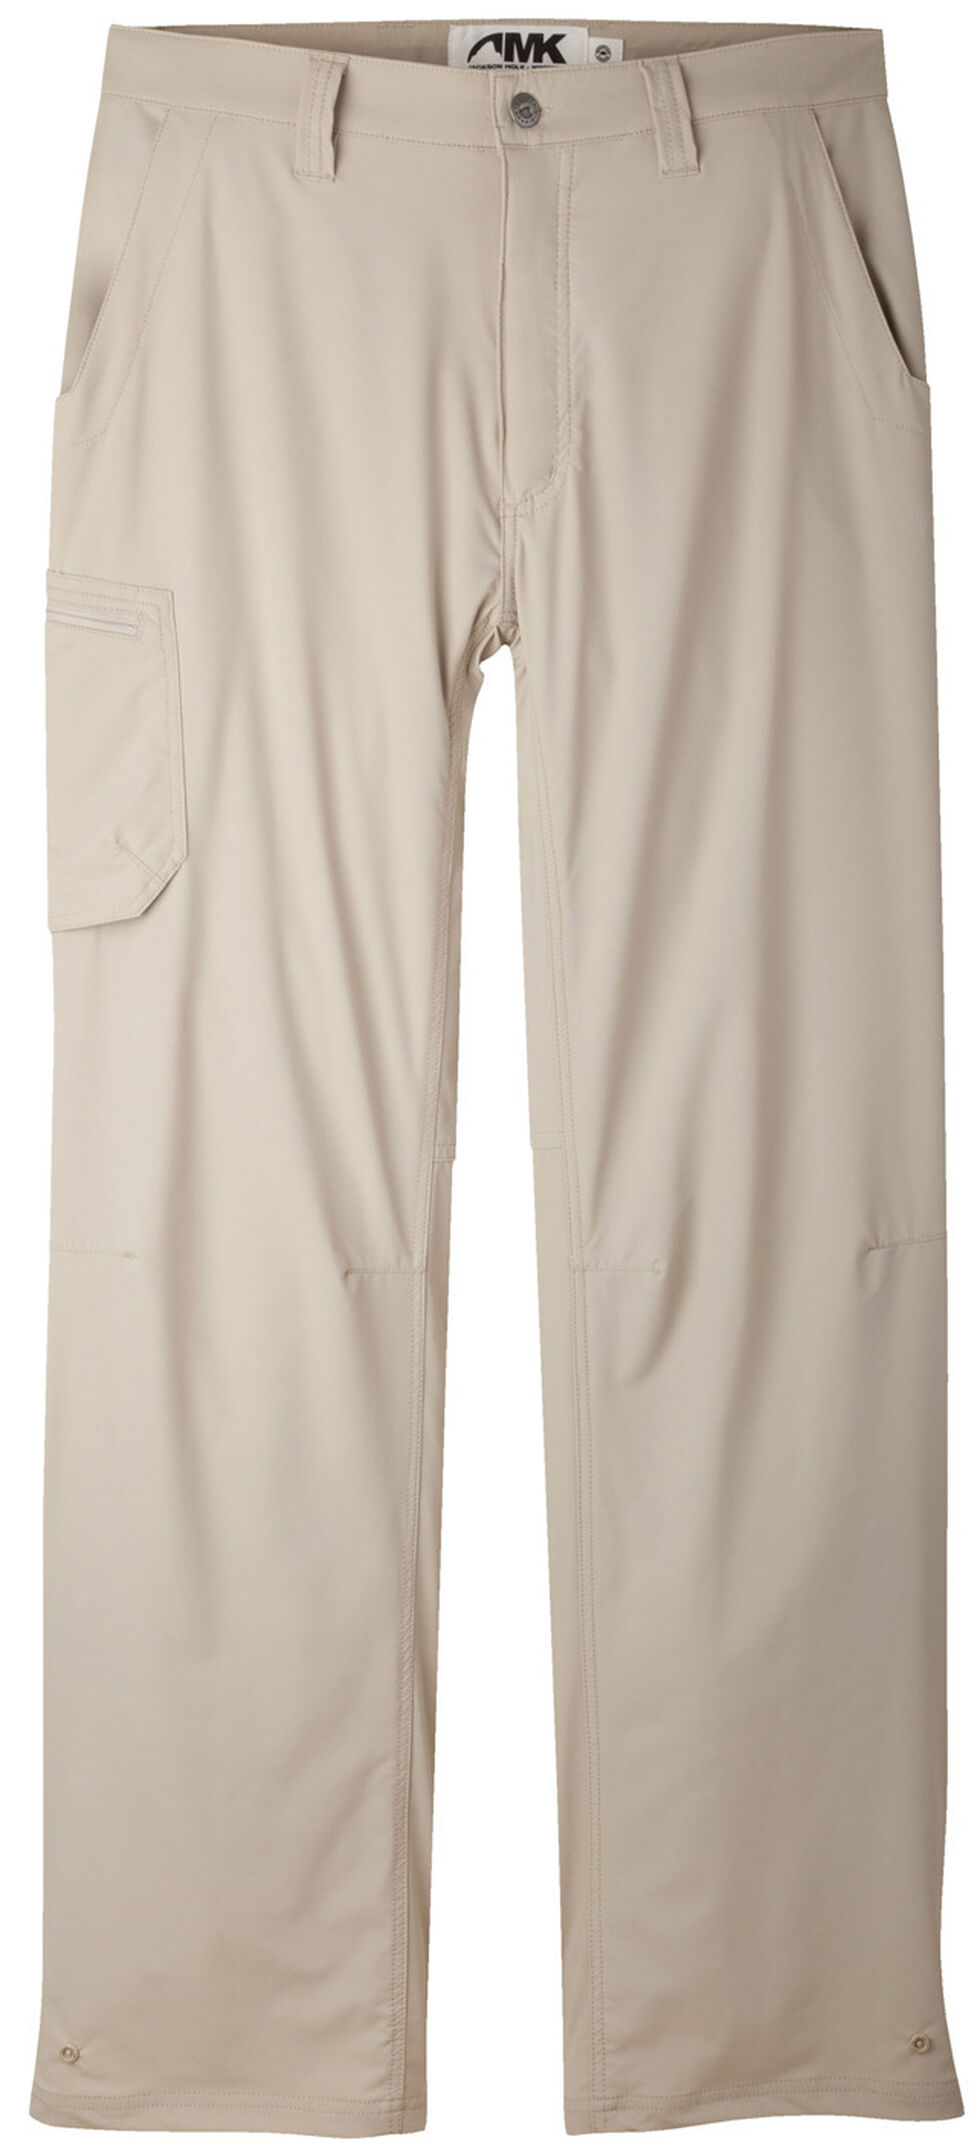 Mountain Khakis Men's Cruiser Relaxed Fit Pants, Charcoal Grey, hi-res